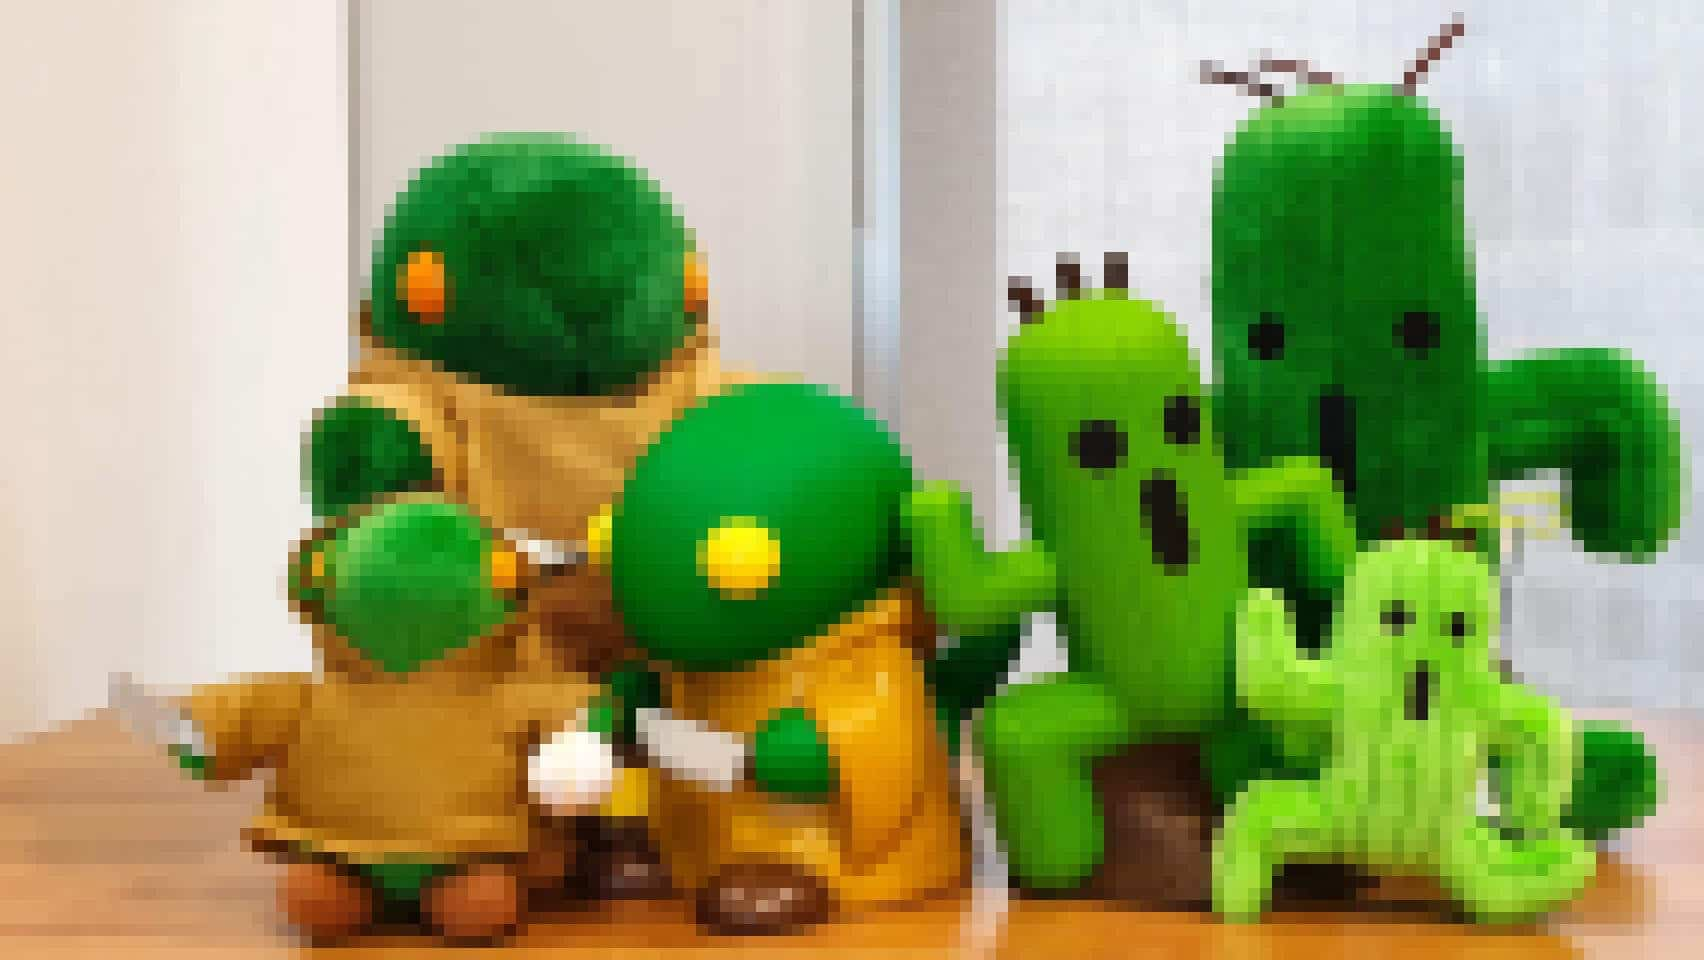 tonberry and cactuar pixels